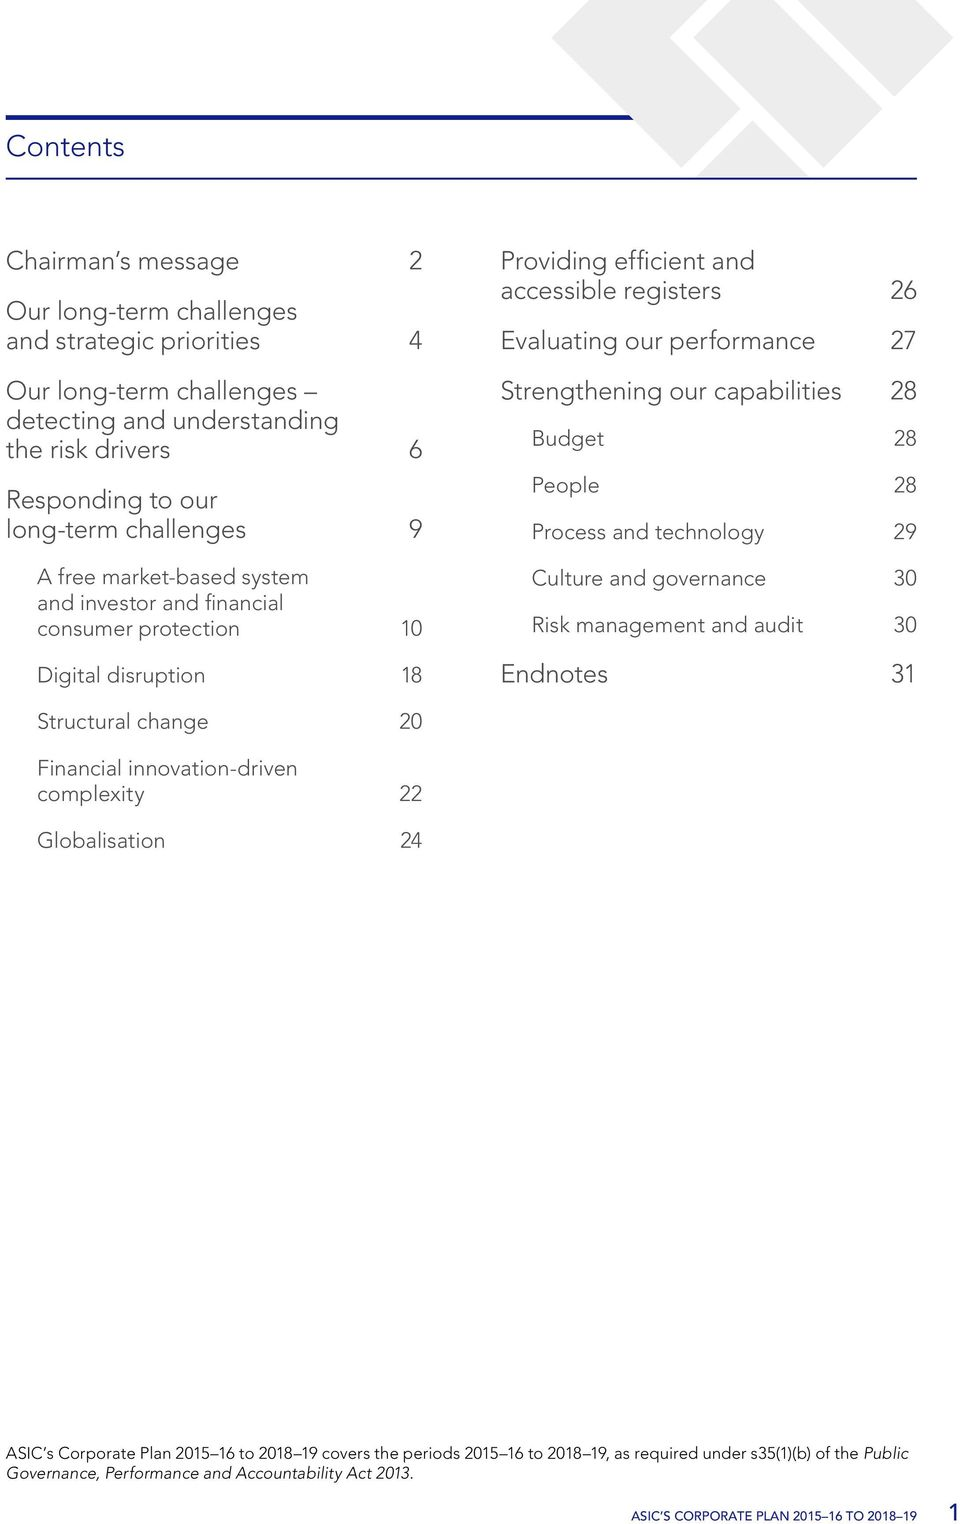 capabilities 28 Budget 28 People 28 Process and technology 29 Culture and governance 30 Risk management and audit 30 Endnotes 31 Structural change 20 Financial innovation-driven complexity 22